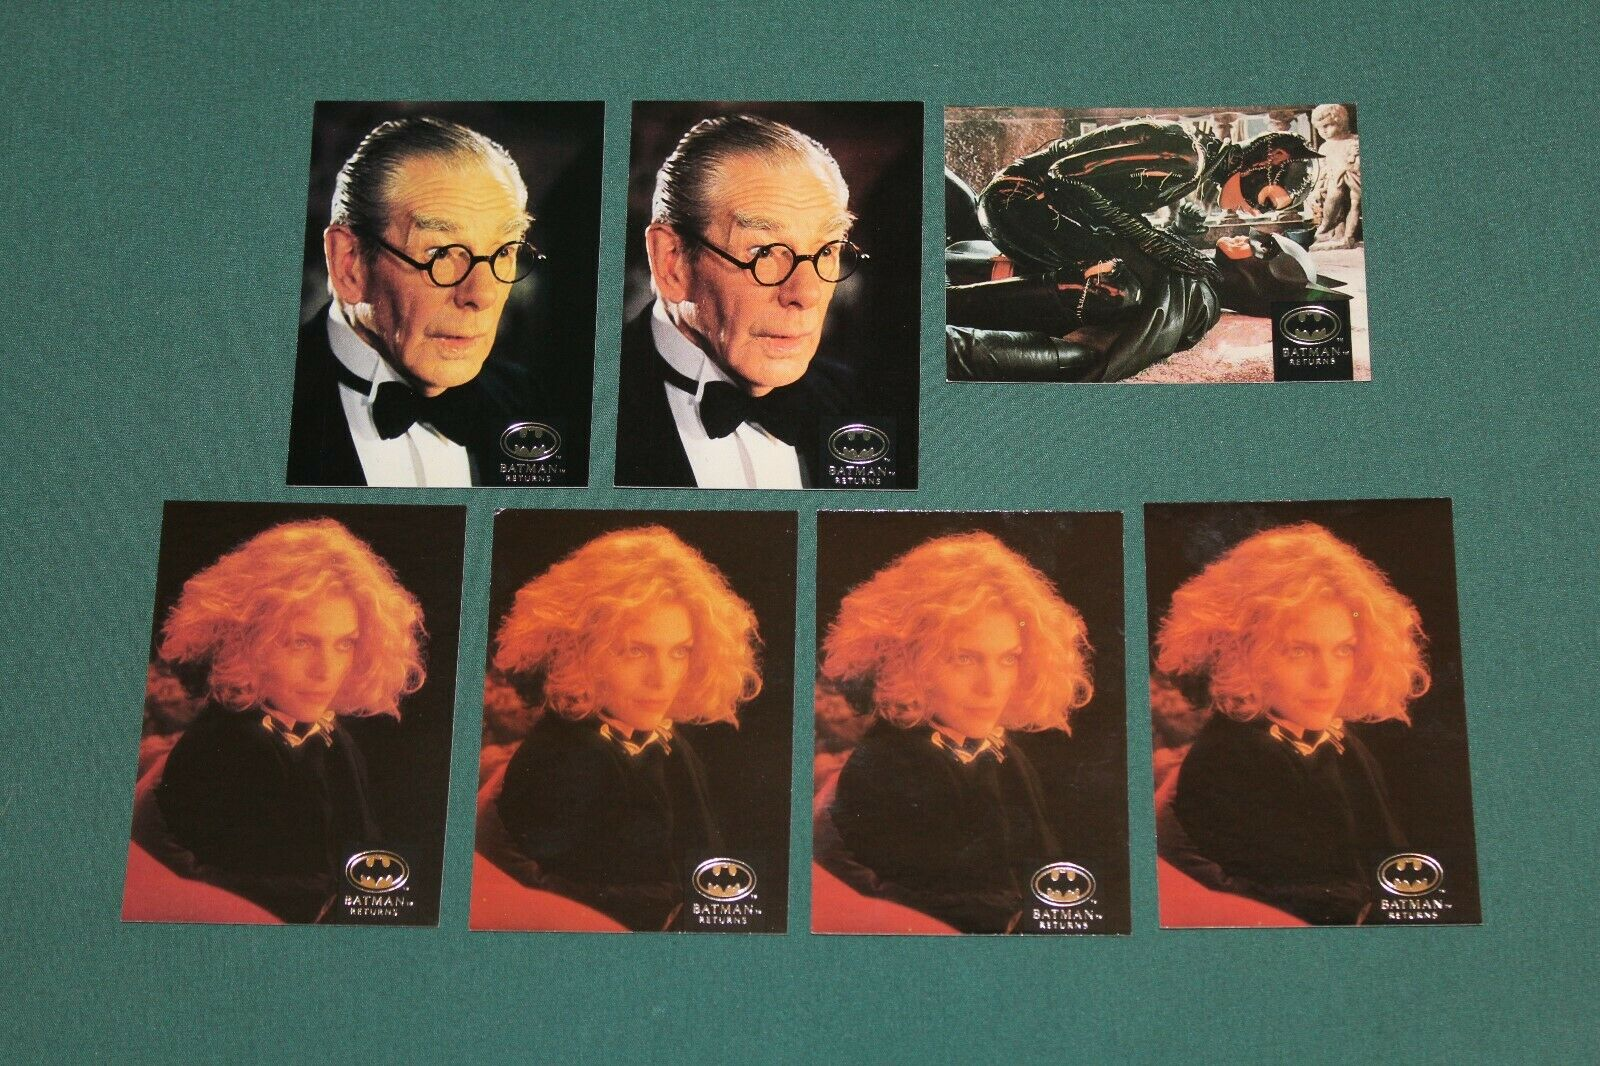 BATMAN RETURNS 1992 TOPPS STADIUM CLUB CARDS: 2,4,5,6,7,10,12,13,14,15,16,17,20 Без бренда NONE - фотография #2